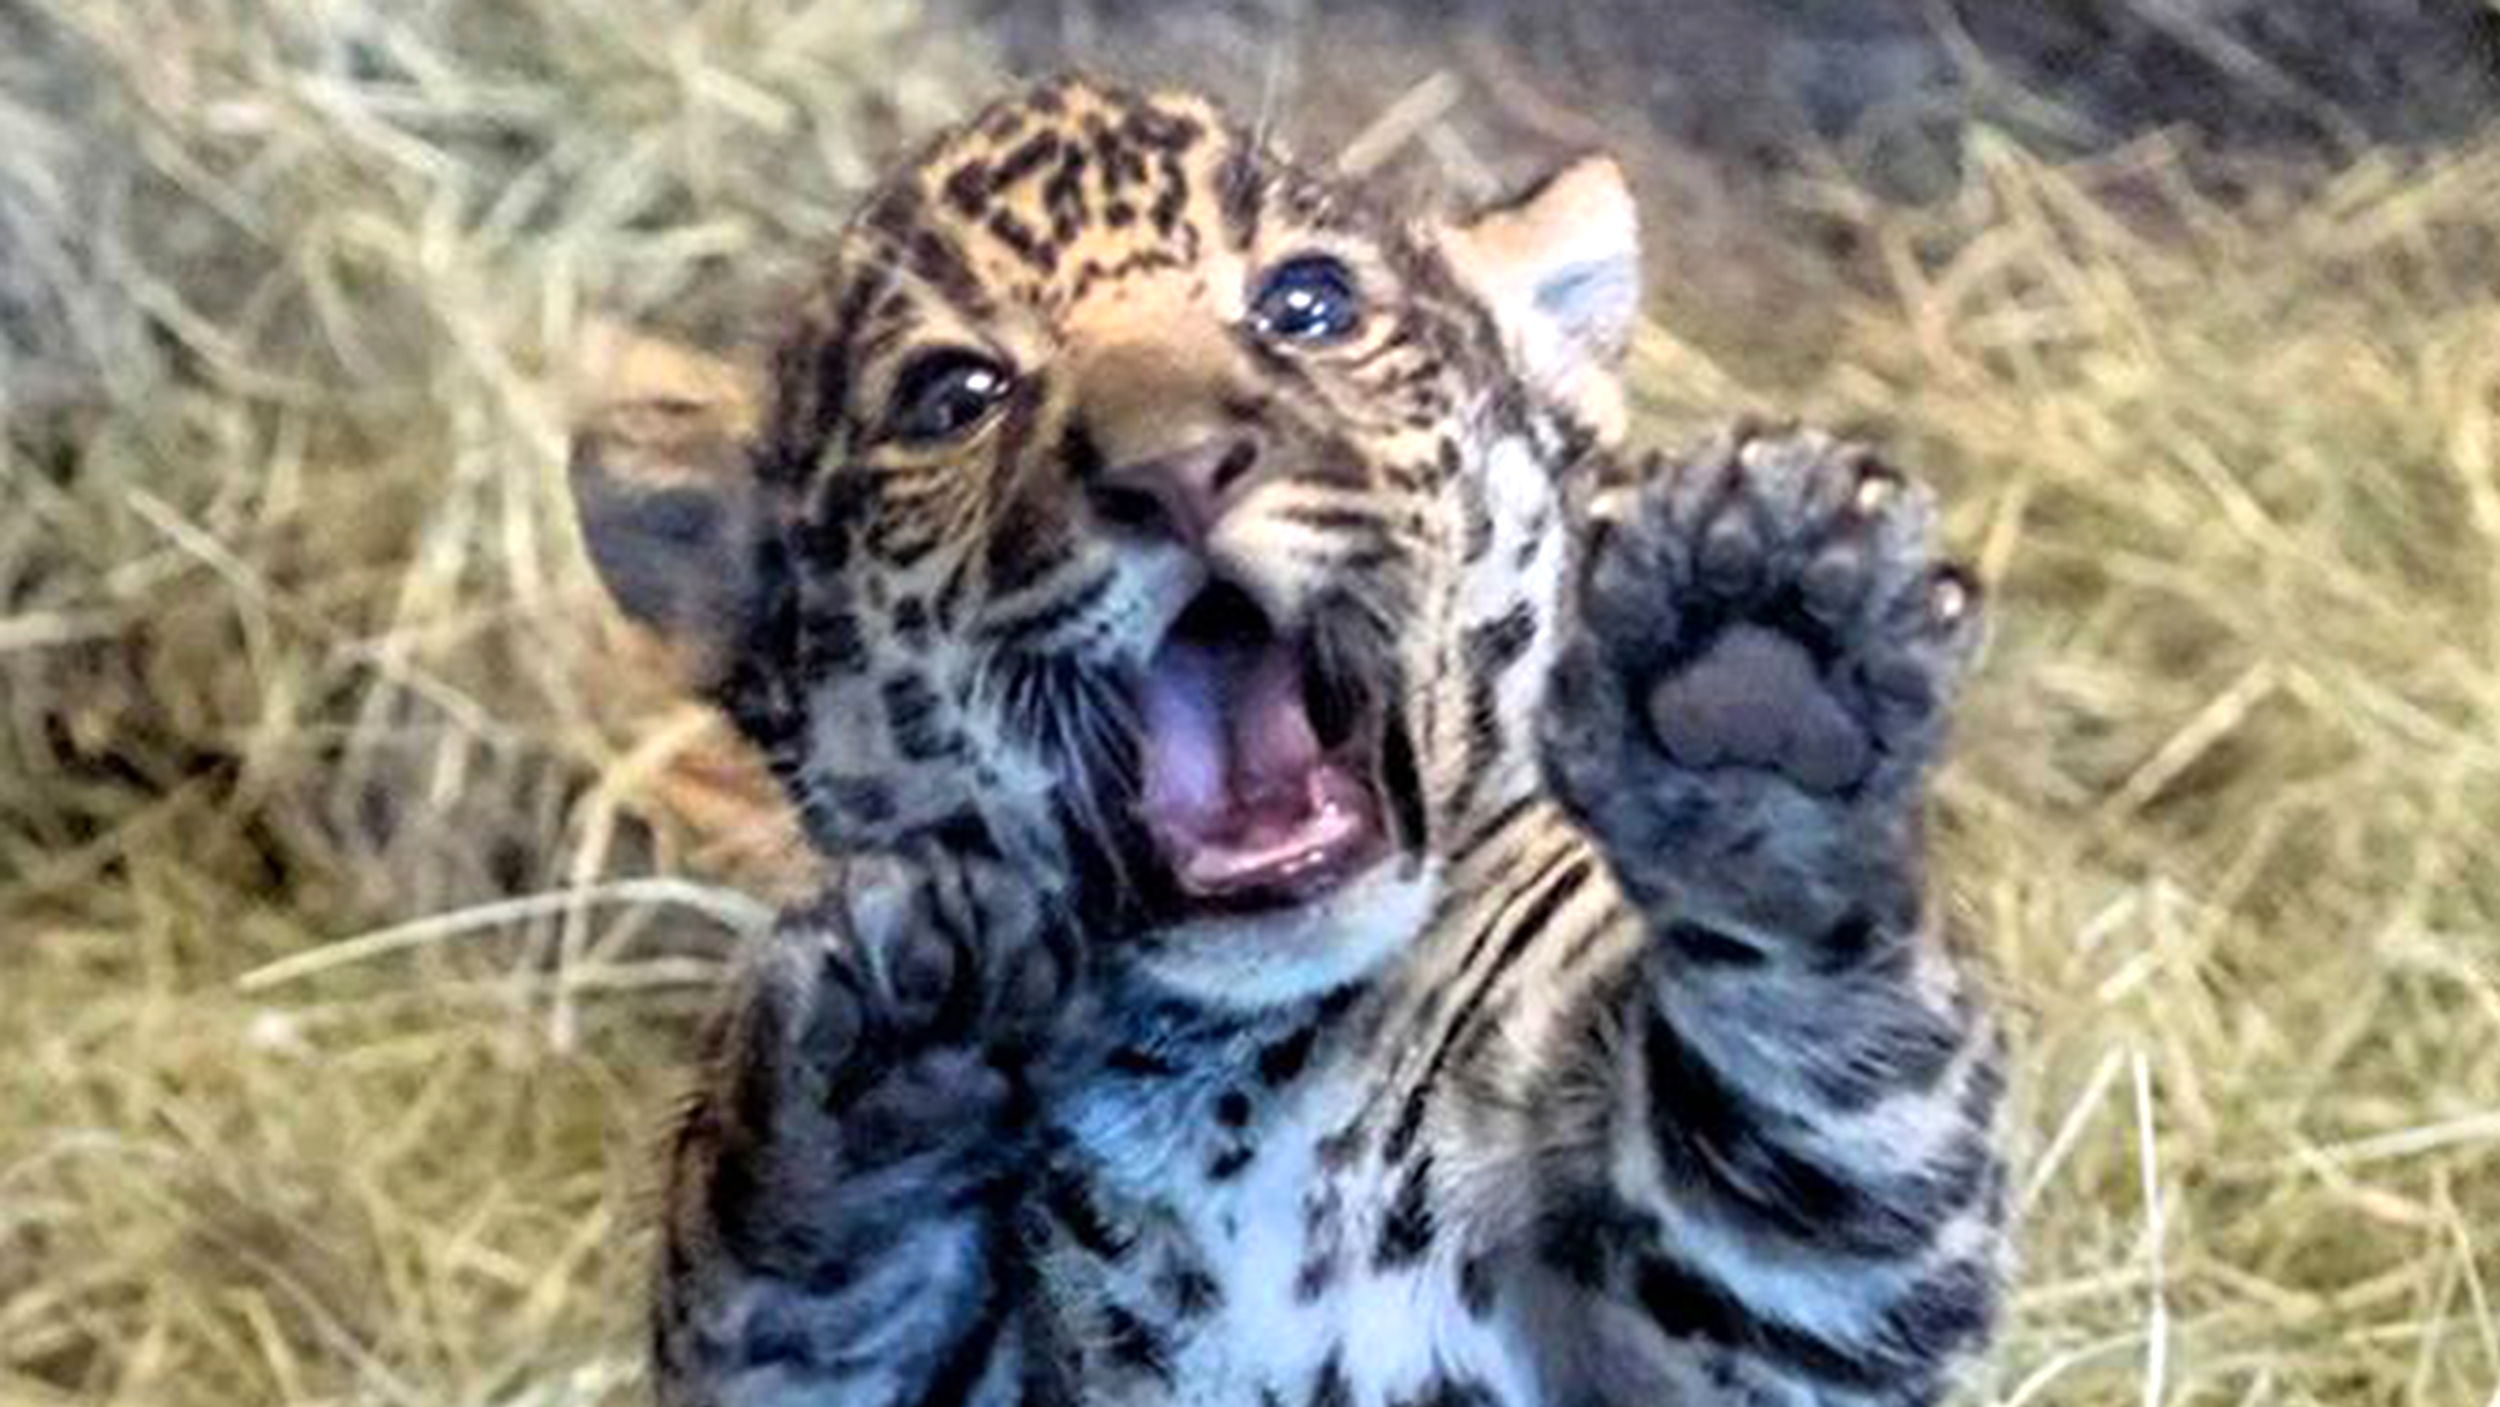 San Diego Zoo's playful baby jaguar will melt your heart ...